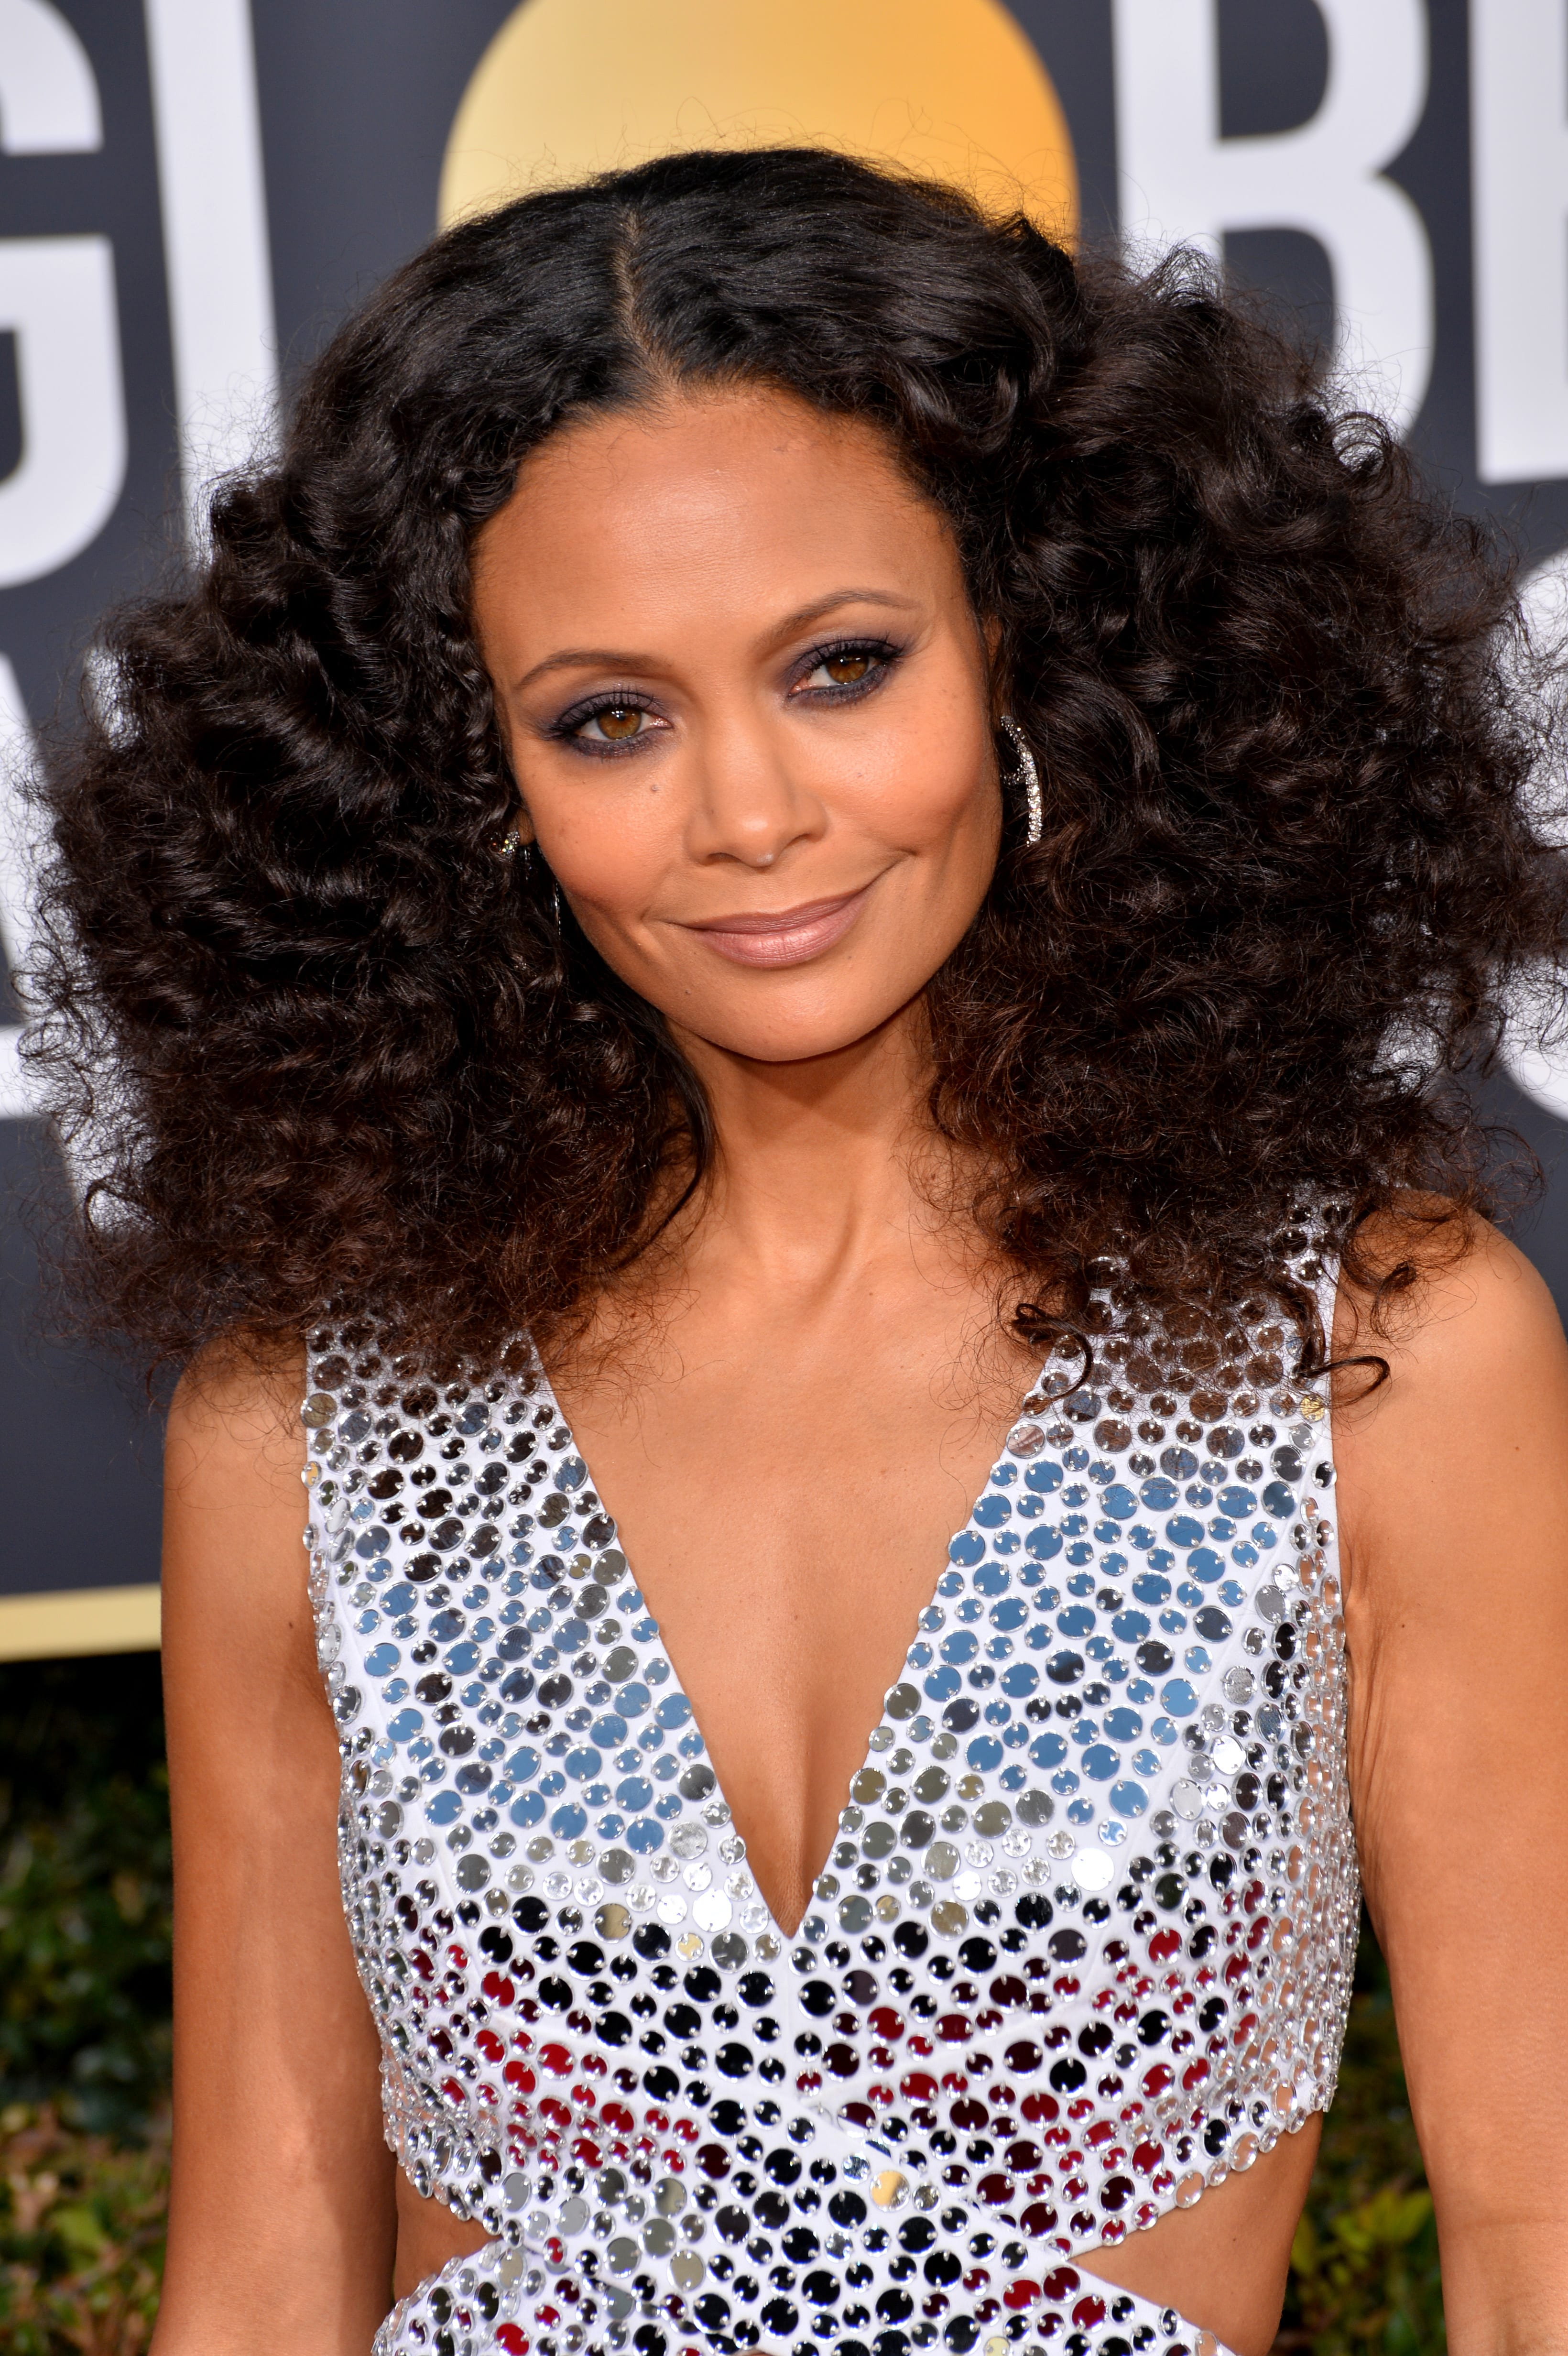 Thandie Newton's Middle-Parted Afro